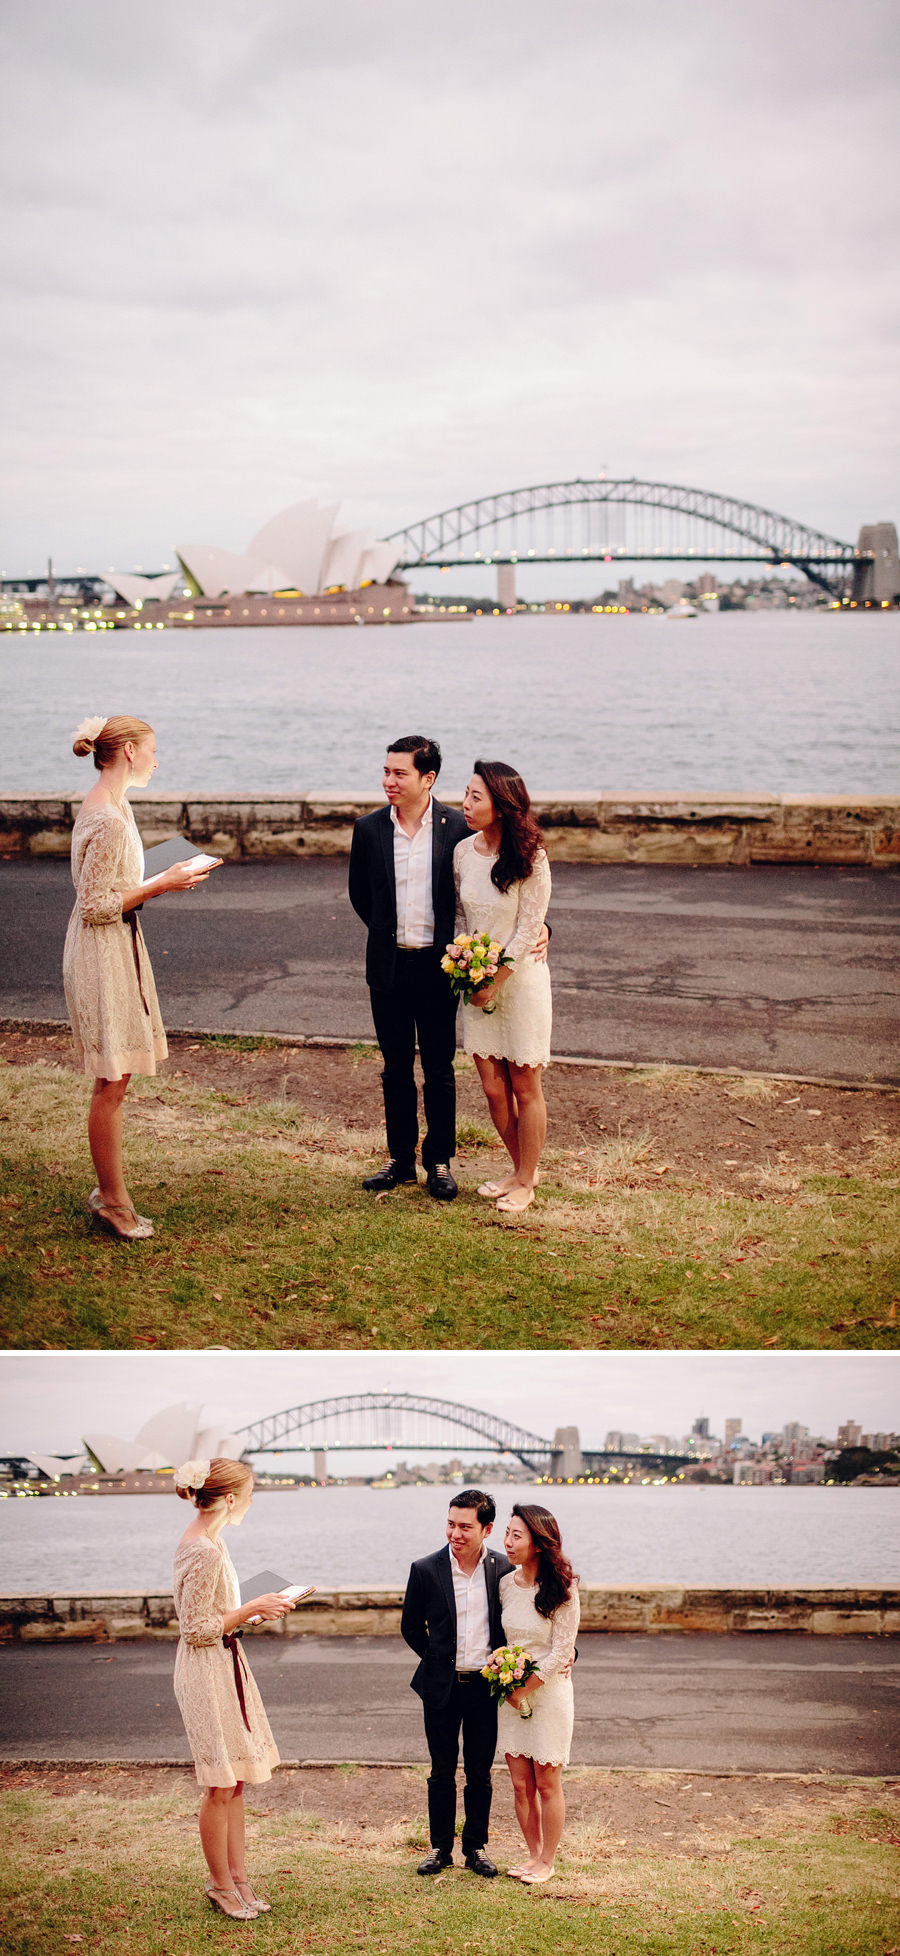 Mrs Macquarie's Chair Wedding Photographers: Faye & Ming